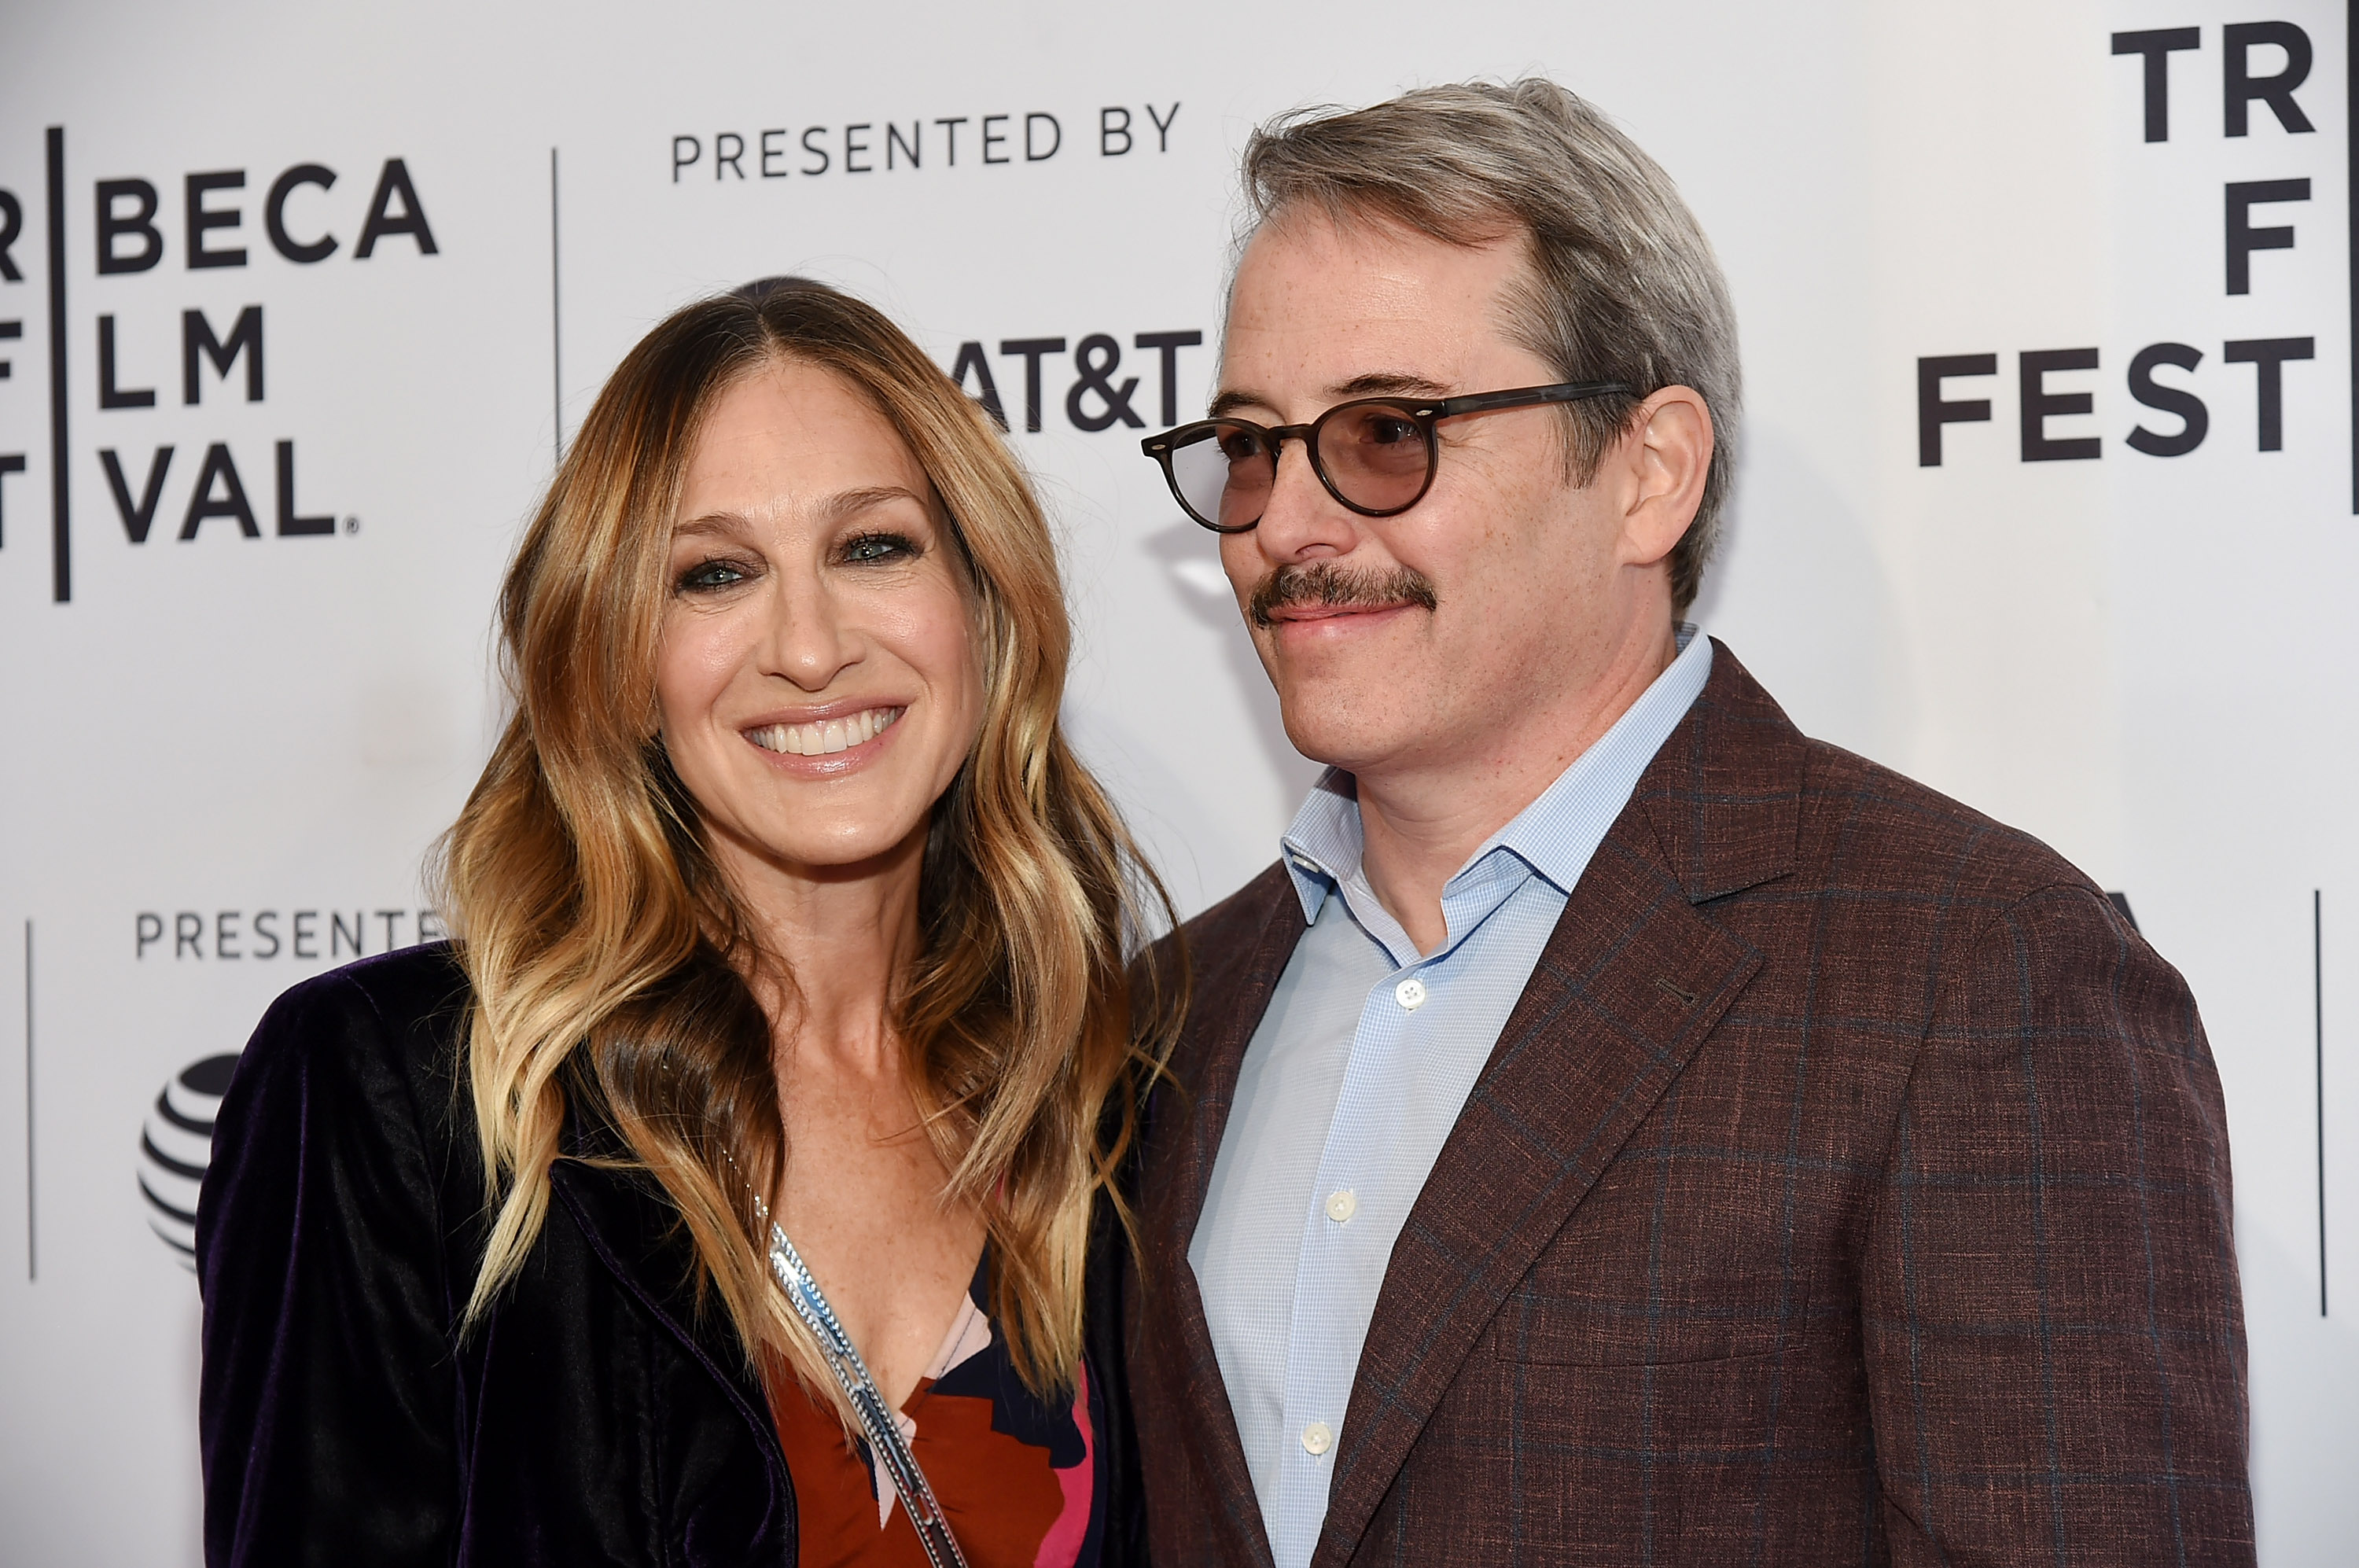 Sarah Jessica Parker and Matthew Broderick May Sell Their West Village Home of 20 Years